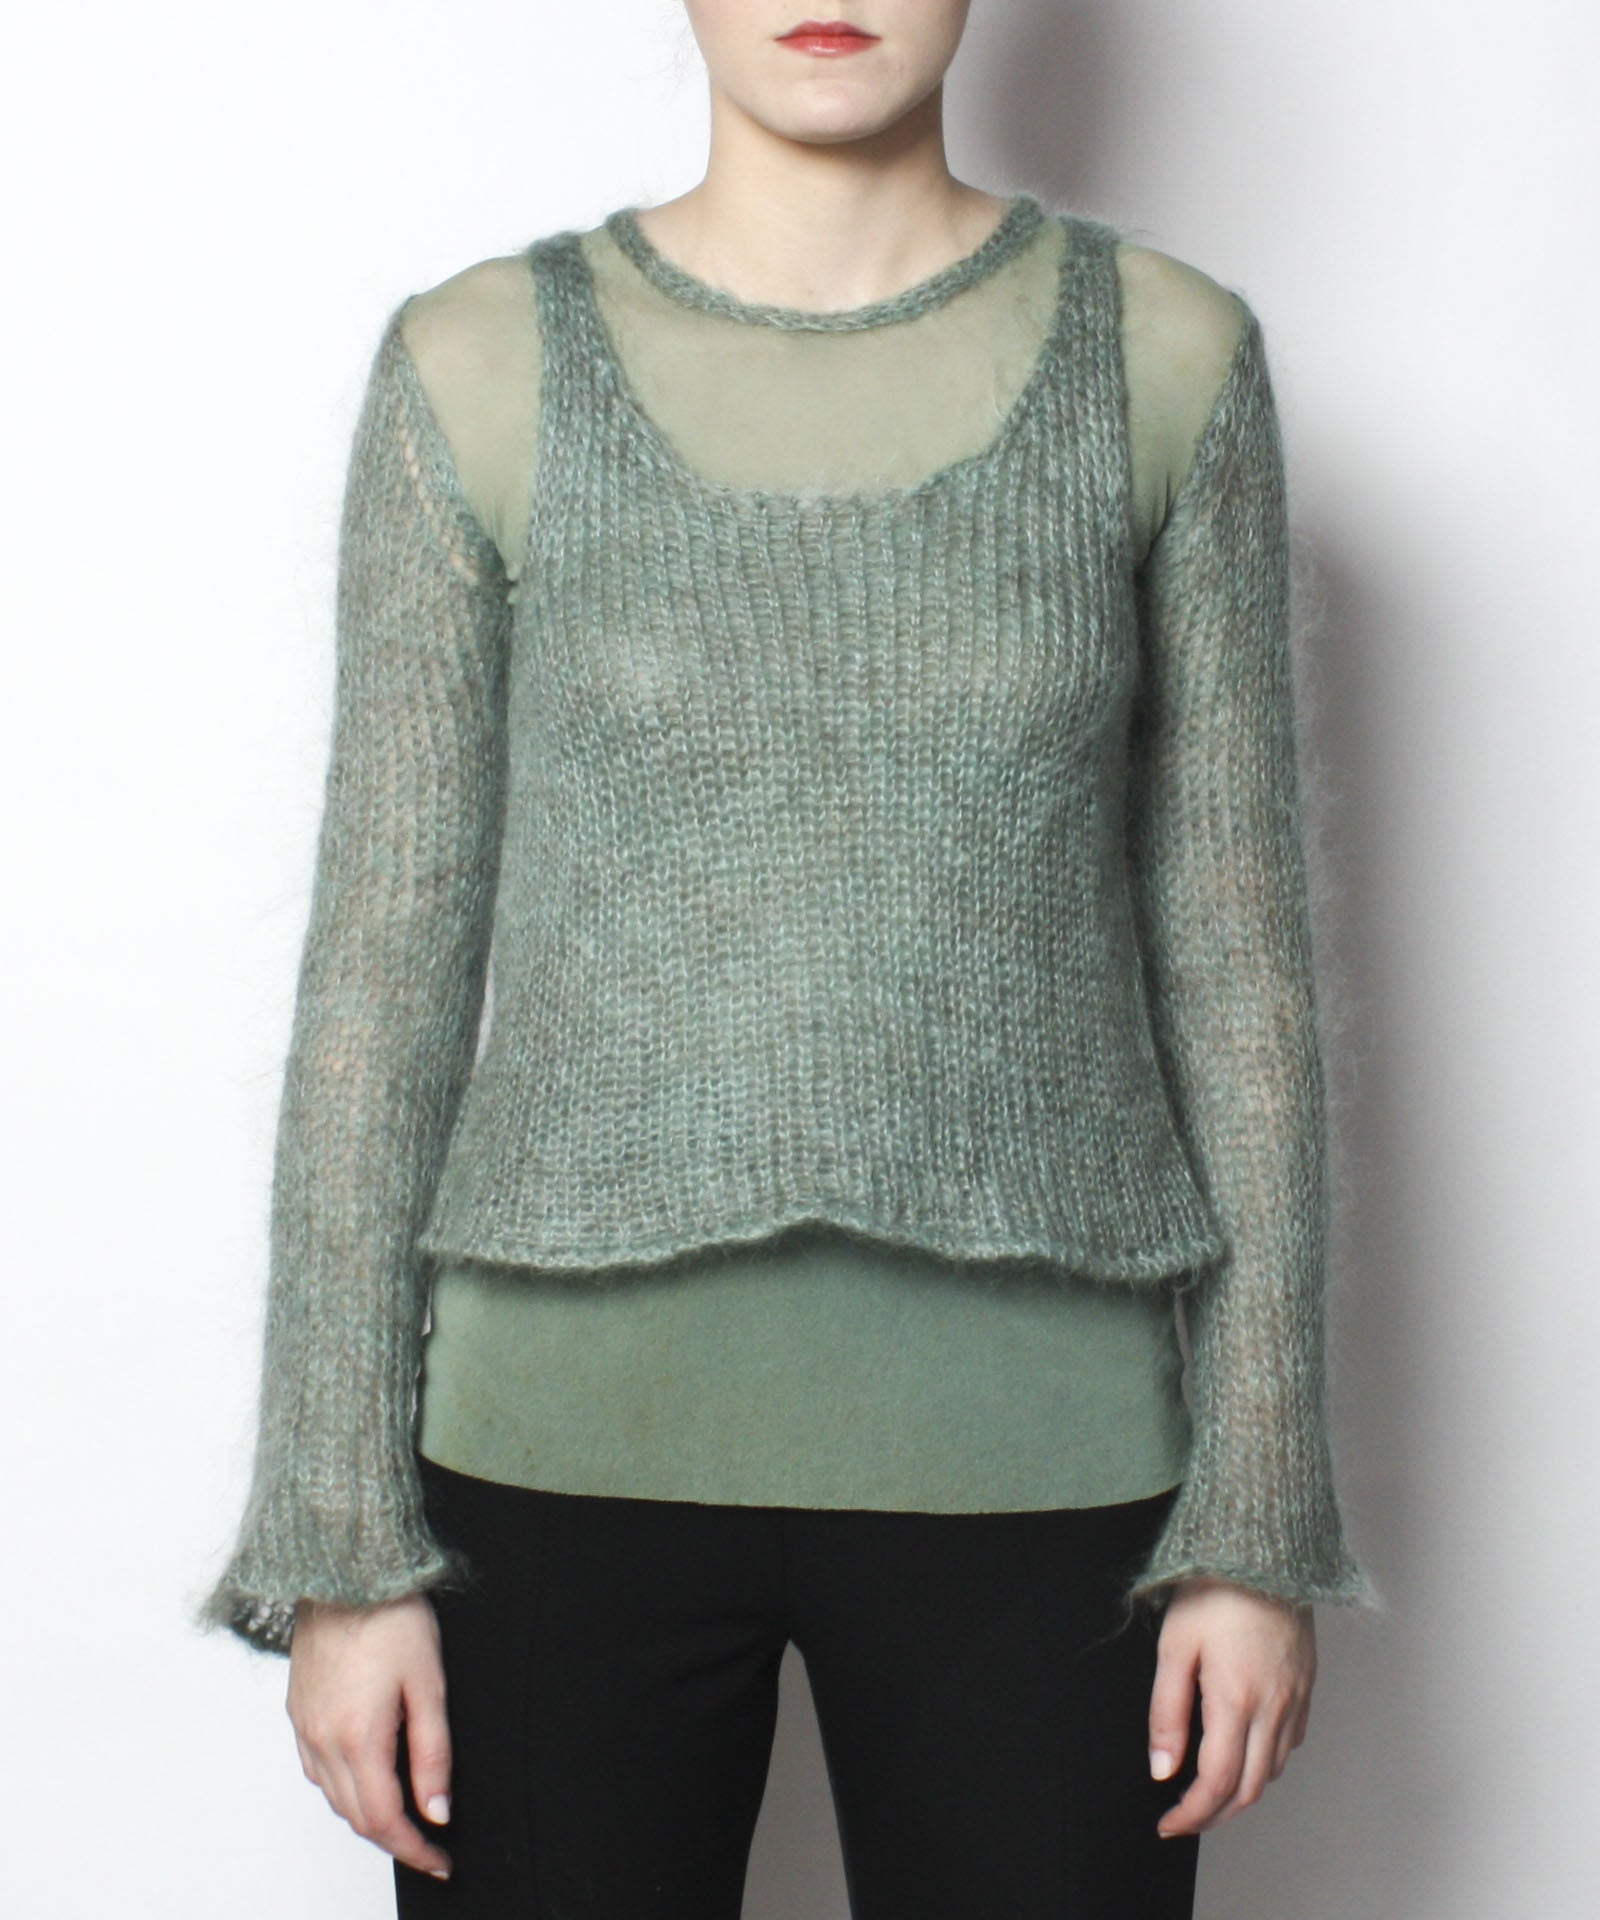 Jean Paul Gaultier Sea foam Green Sheer Knit Shirt with Knit Shell and Scarf Set - C.Madeleine's